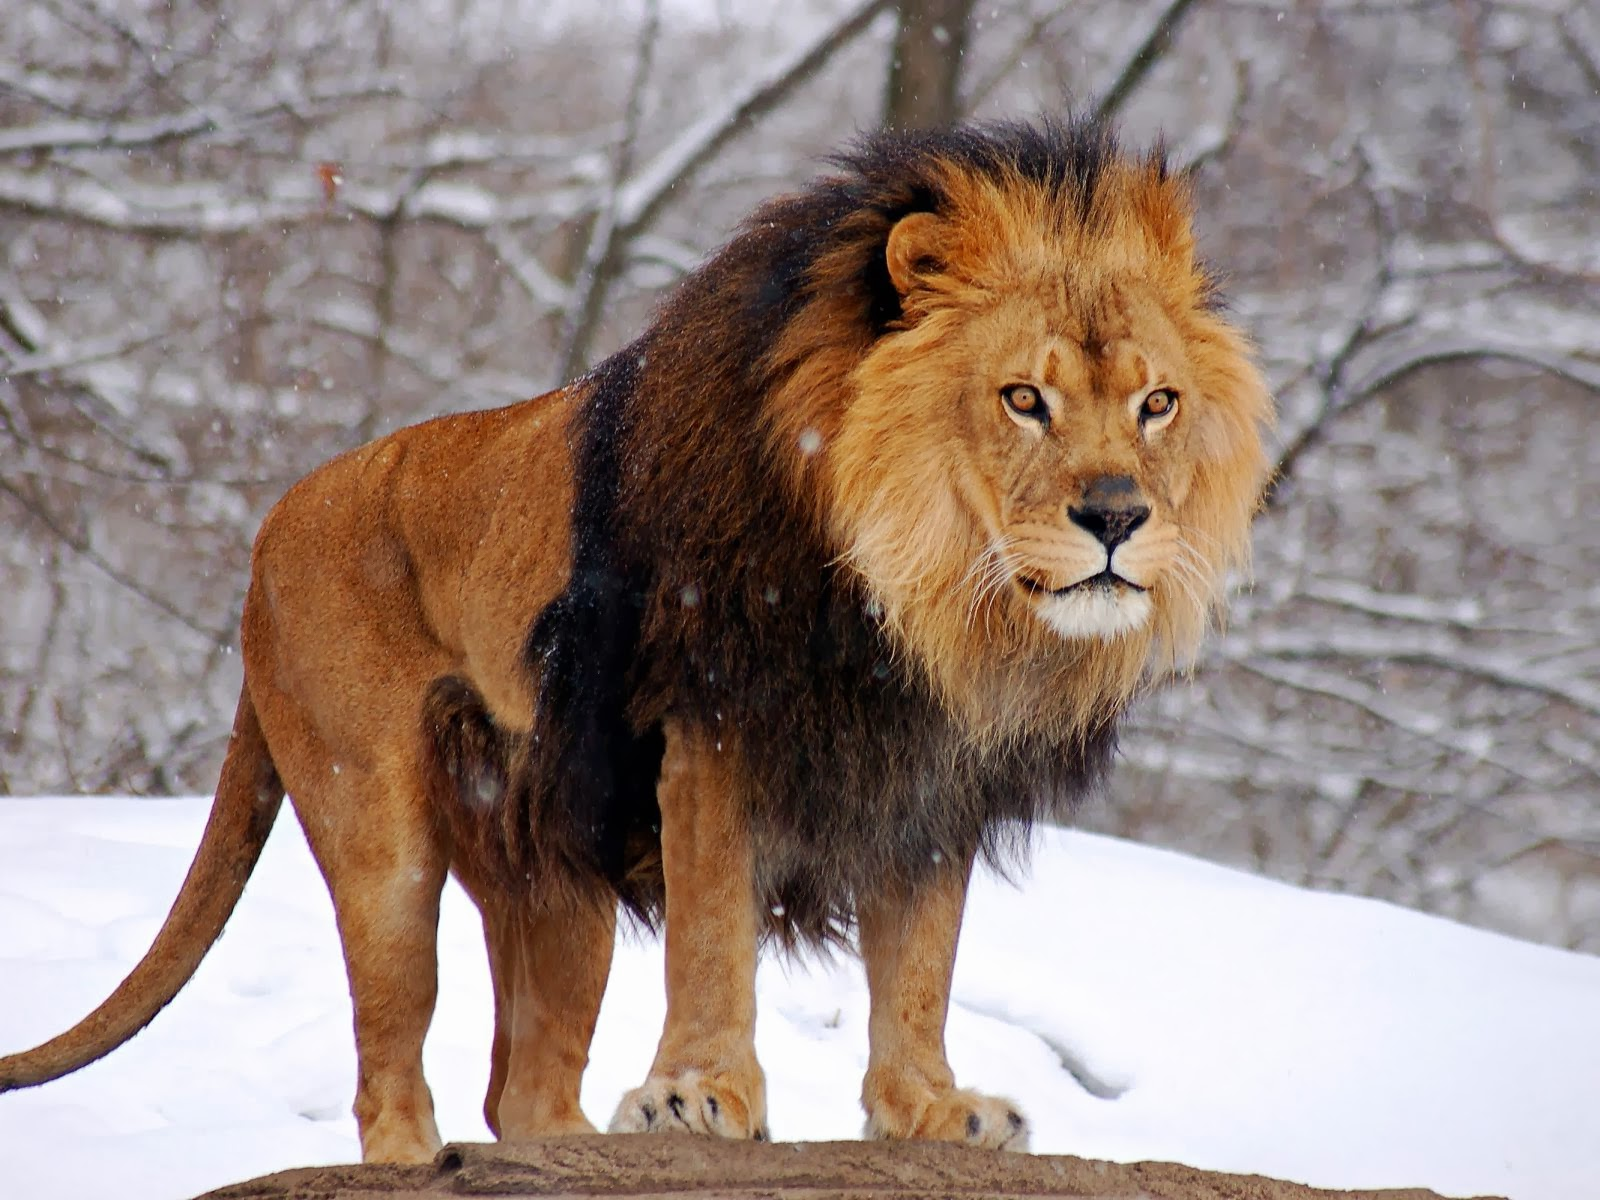 Wildlife Hd Wallpapers Lions Hd Wallpapers The King Of Jungle 2014